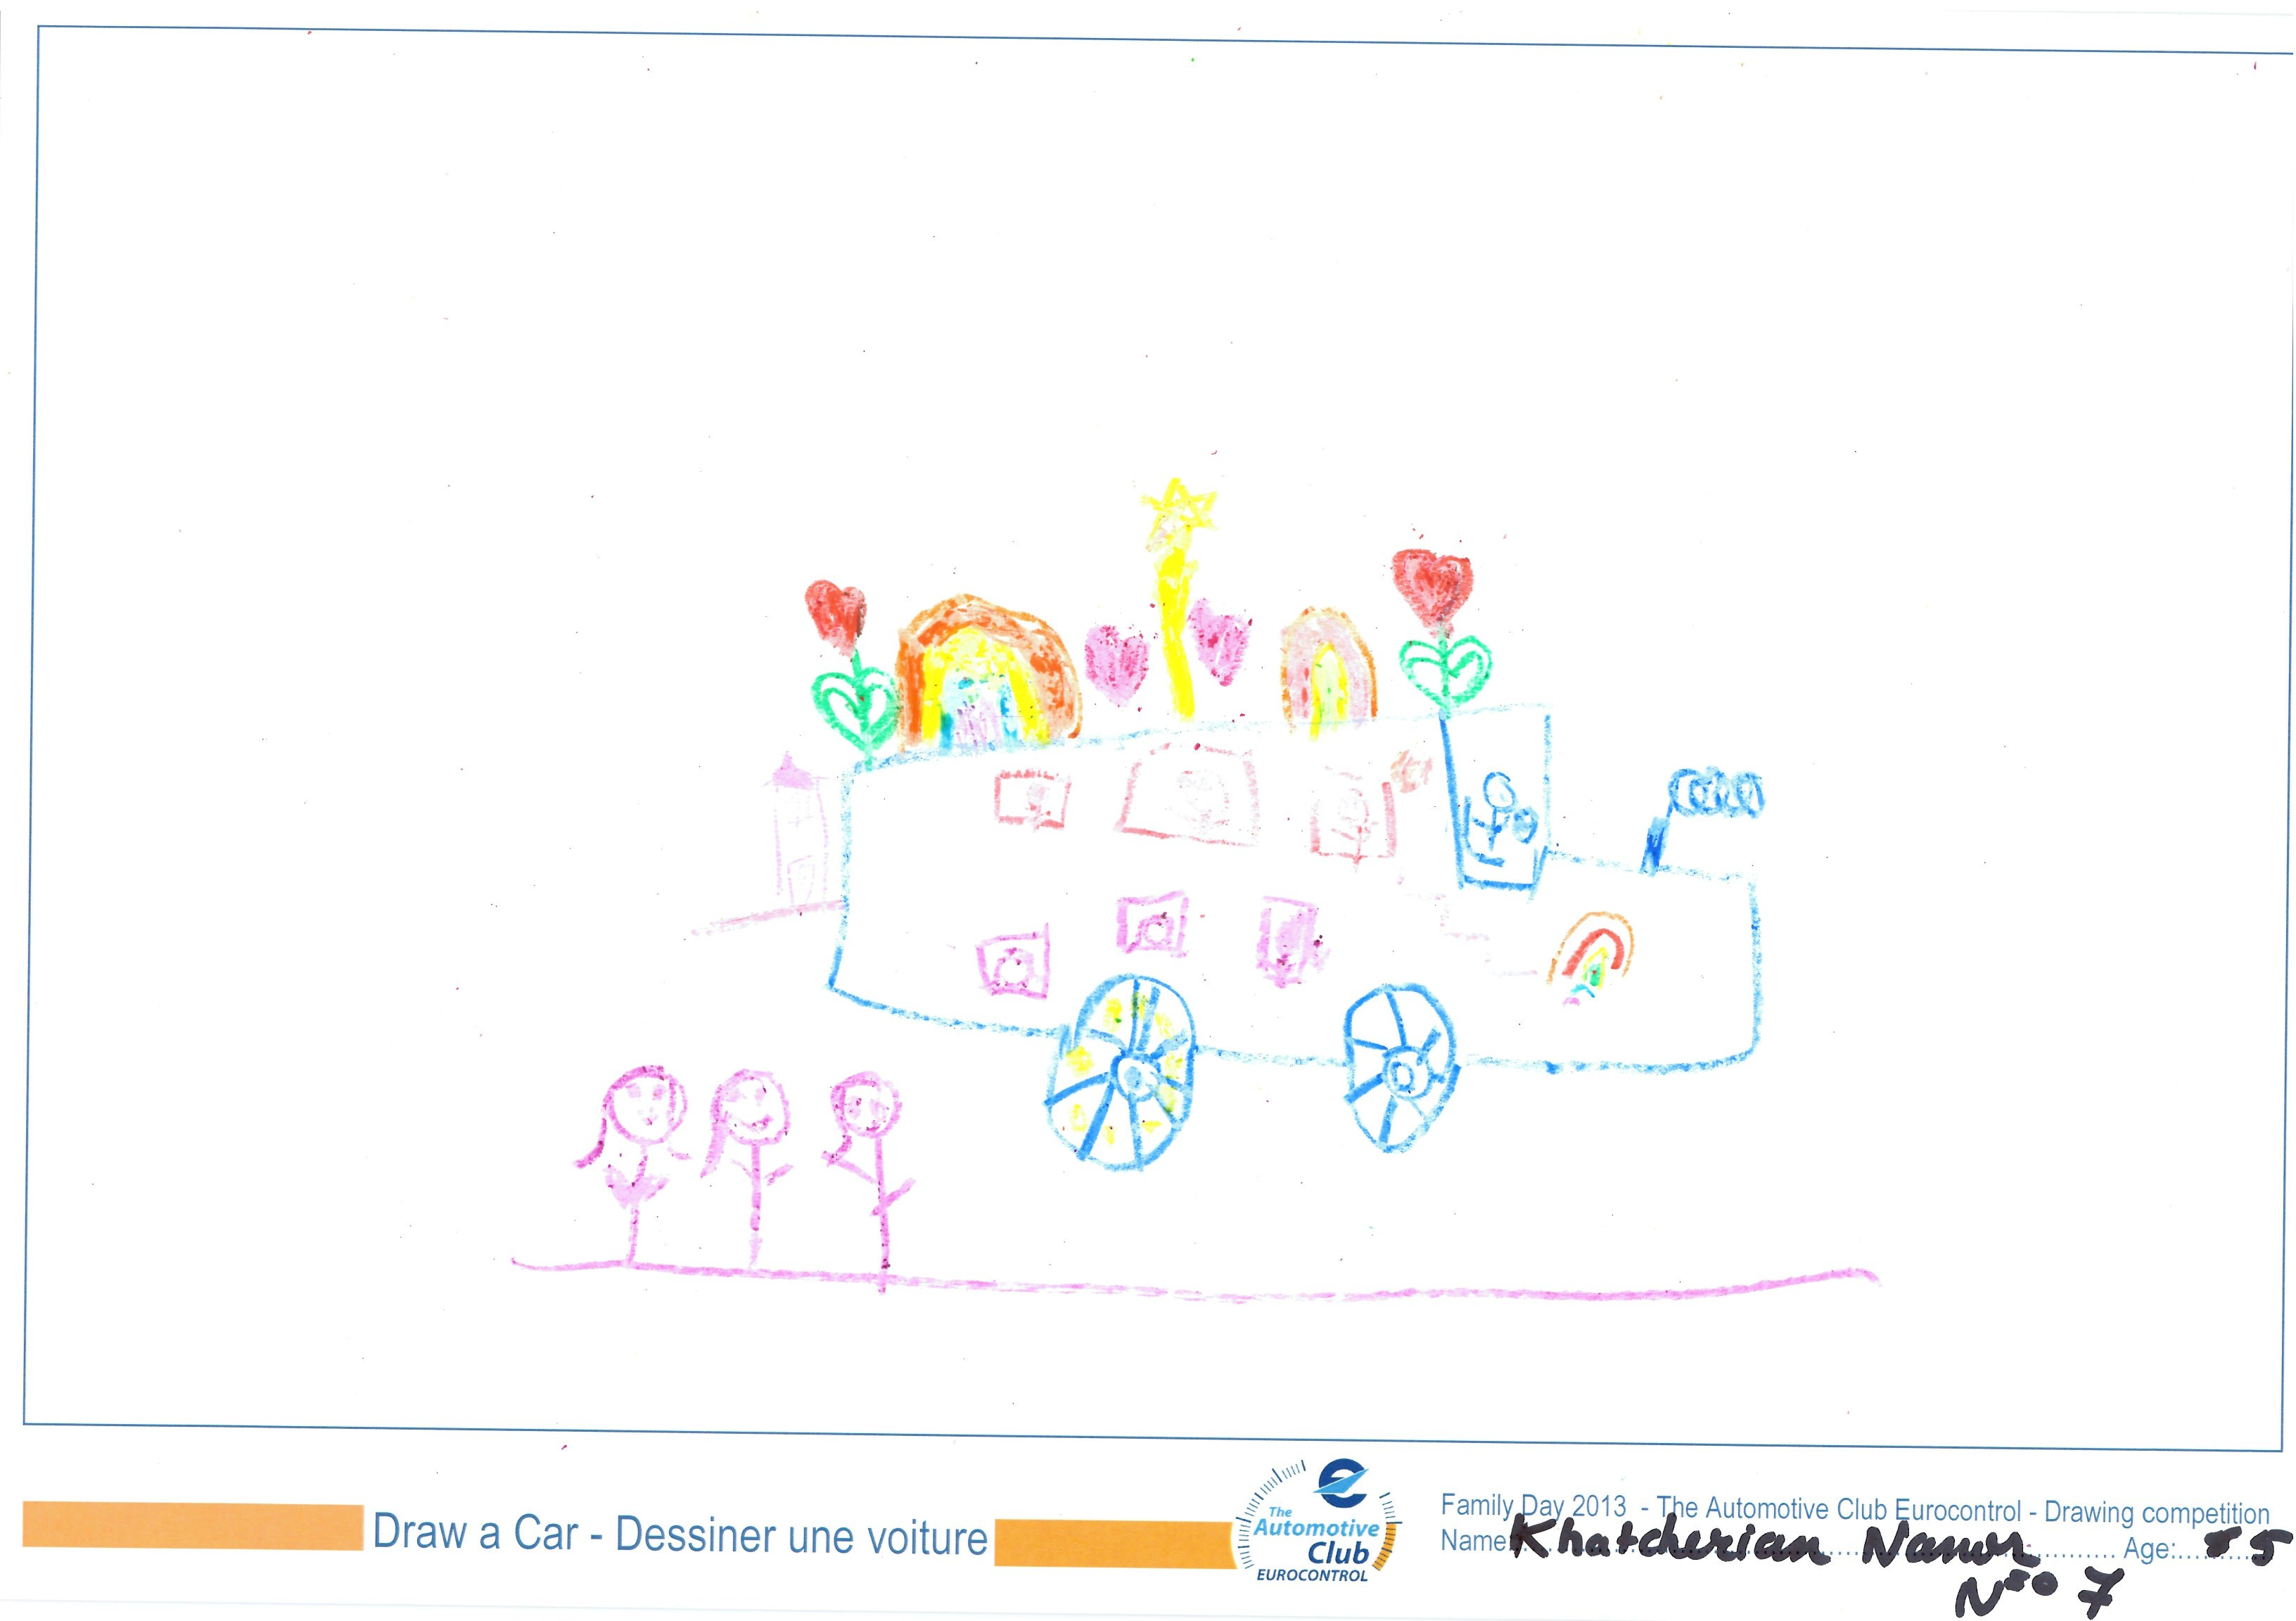 EUROCONTROL Family day 2013 - ACE drawing contest - Drawing 07